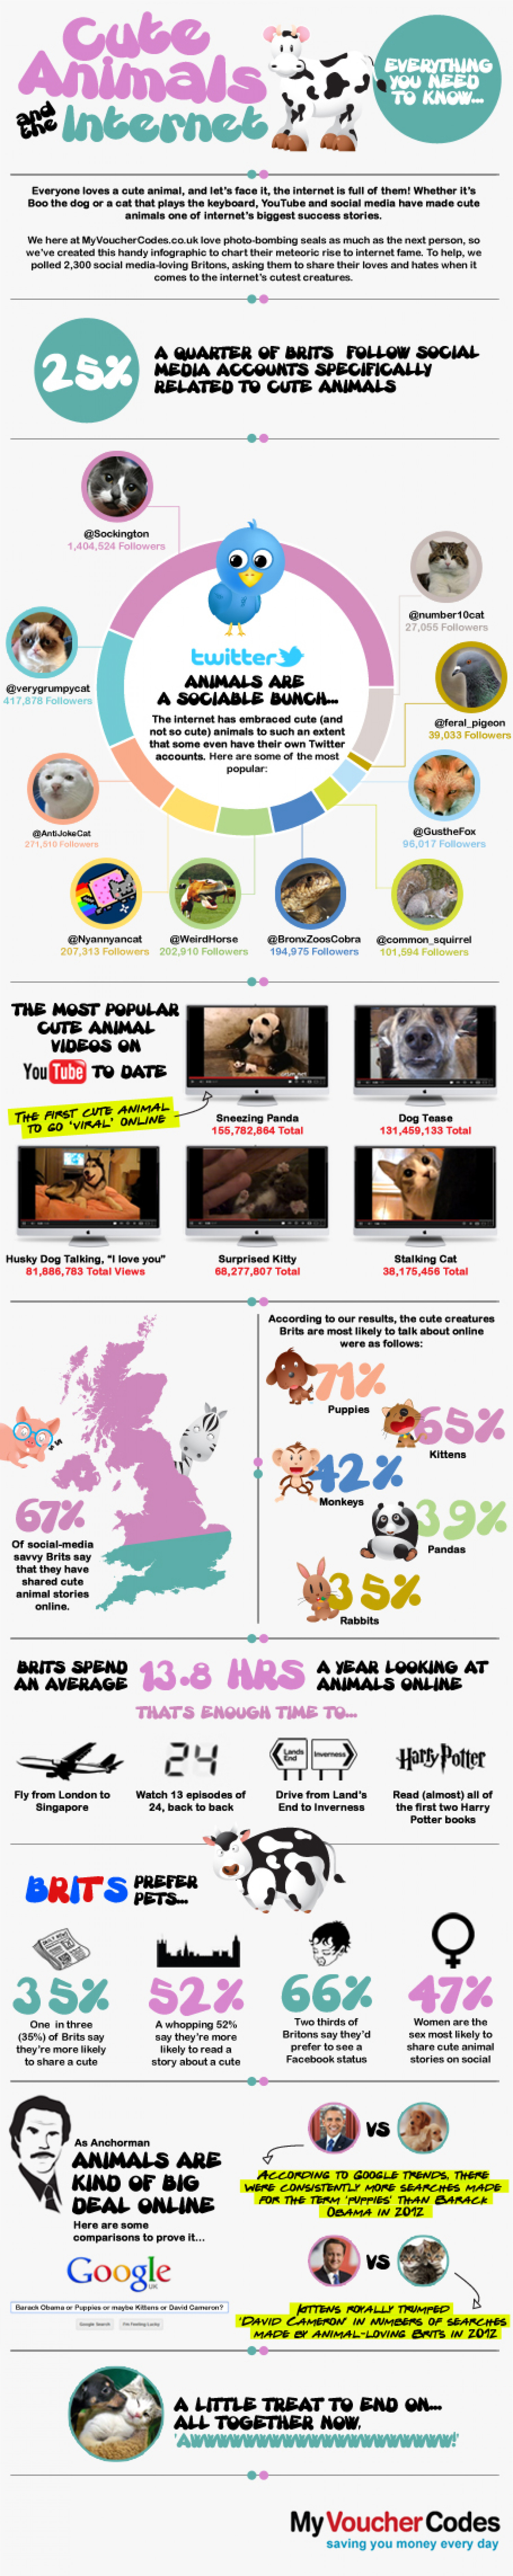 Cute Animals and the Internet Infographic